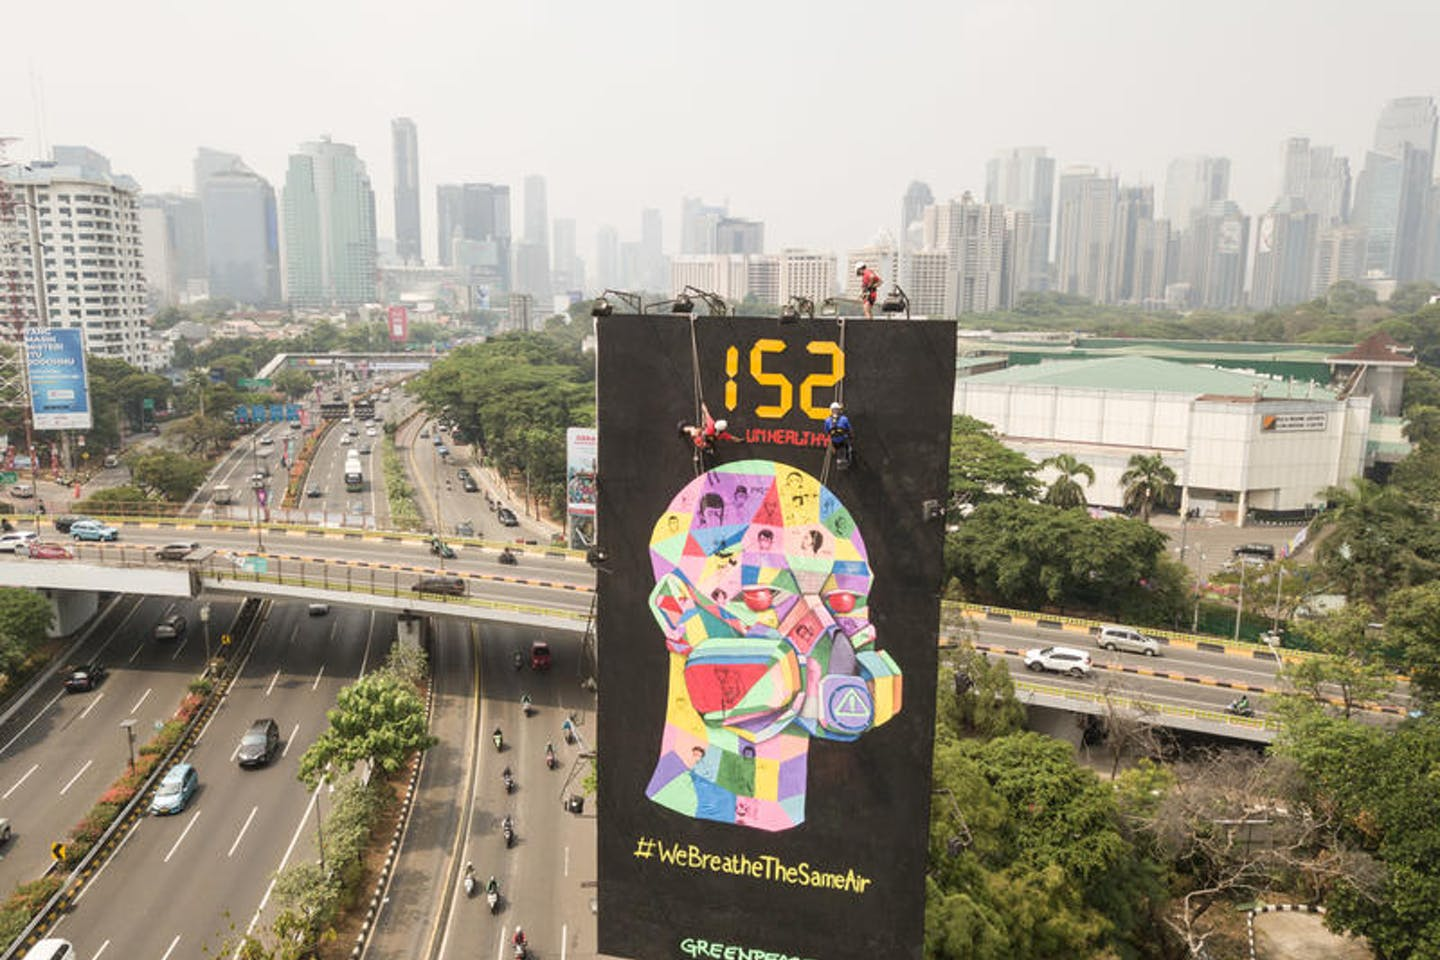 Greenpeace activists hang clean air campaign billboard in